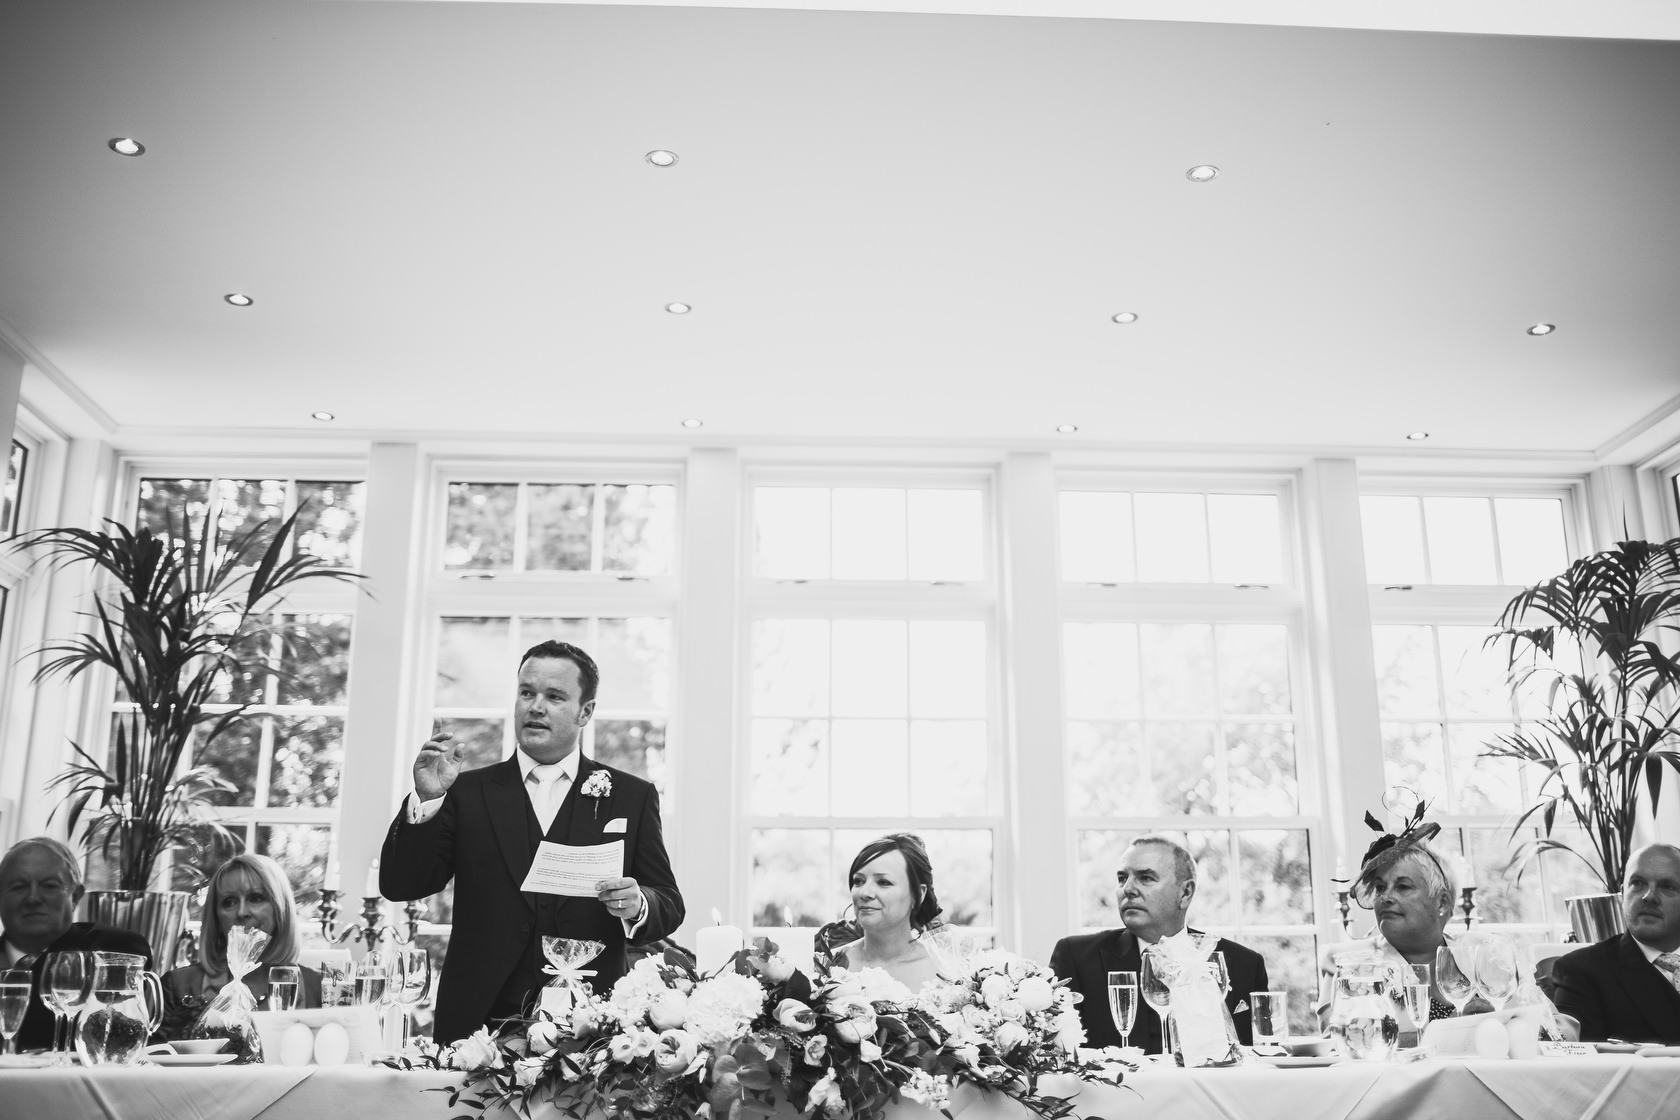 Mitton Hall Wedding Photographer - ARJ Photography